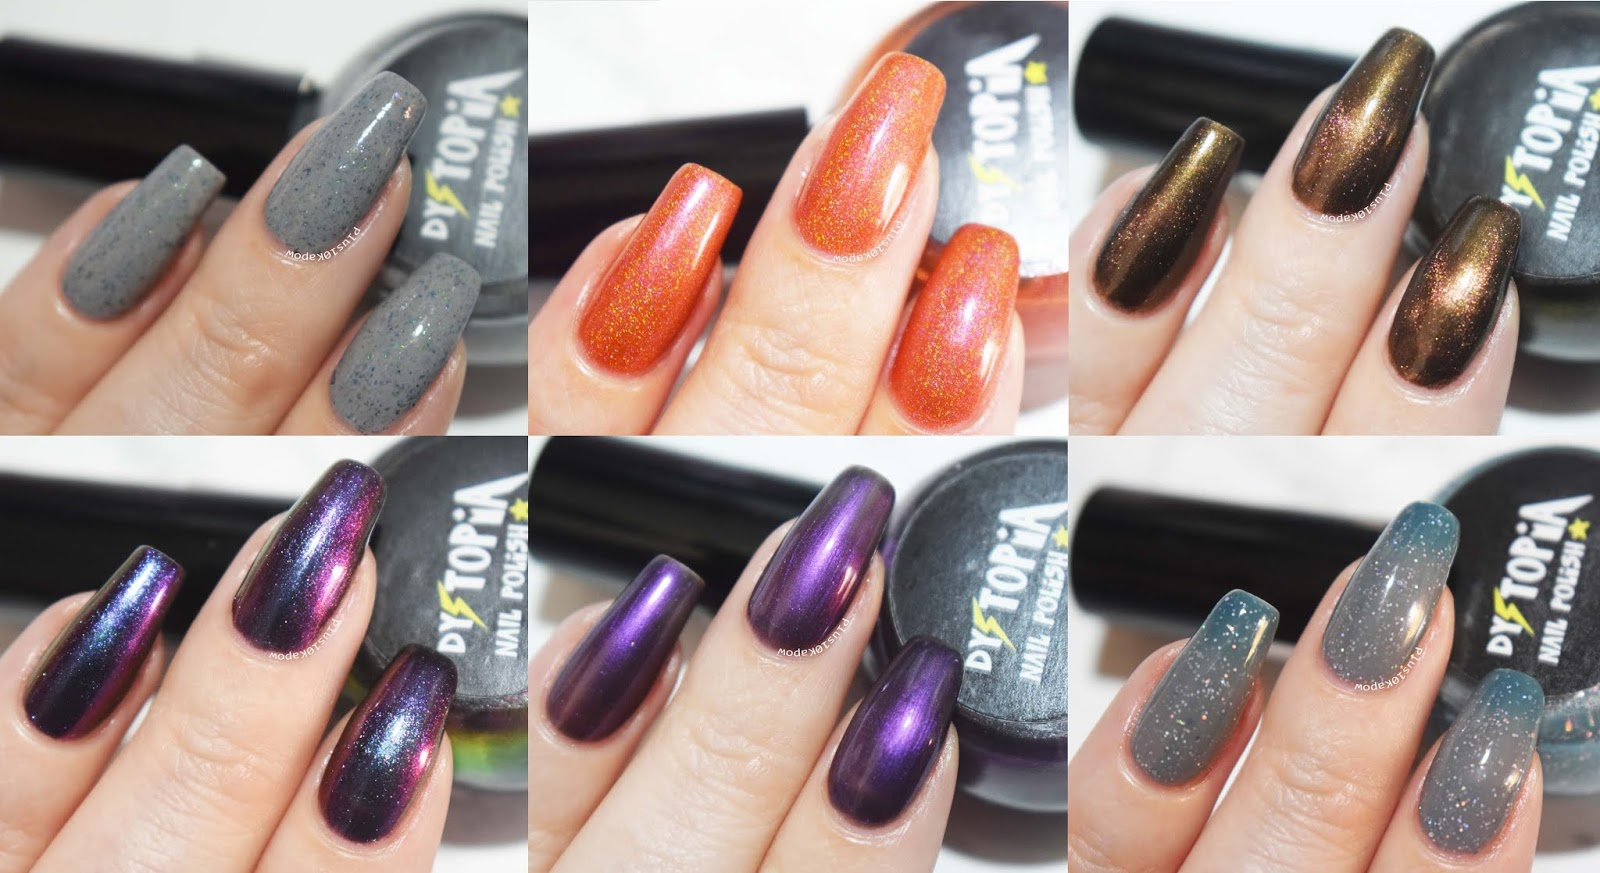 Dystopia Nail Polish Samhain Collection Swatches Plus10Kapow